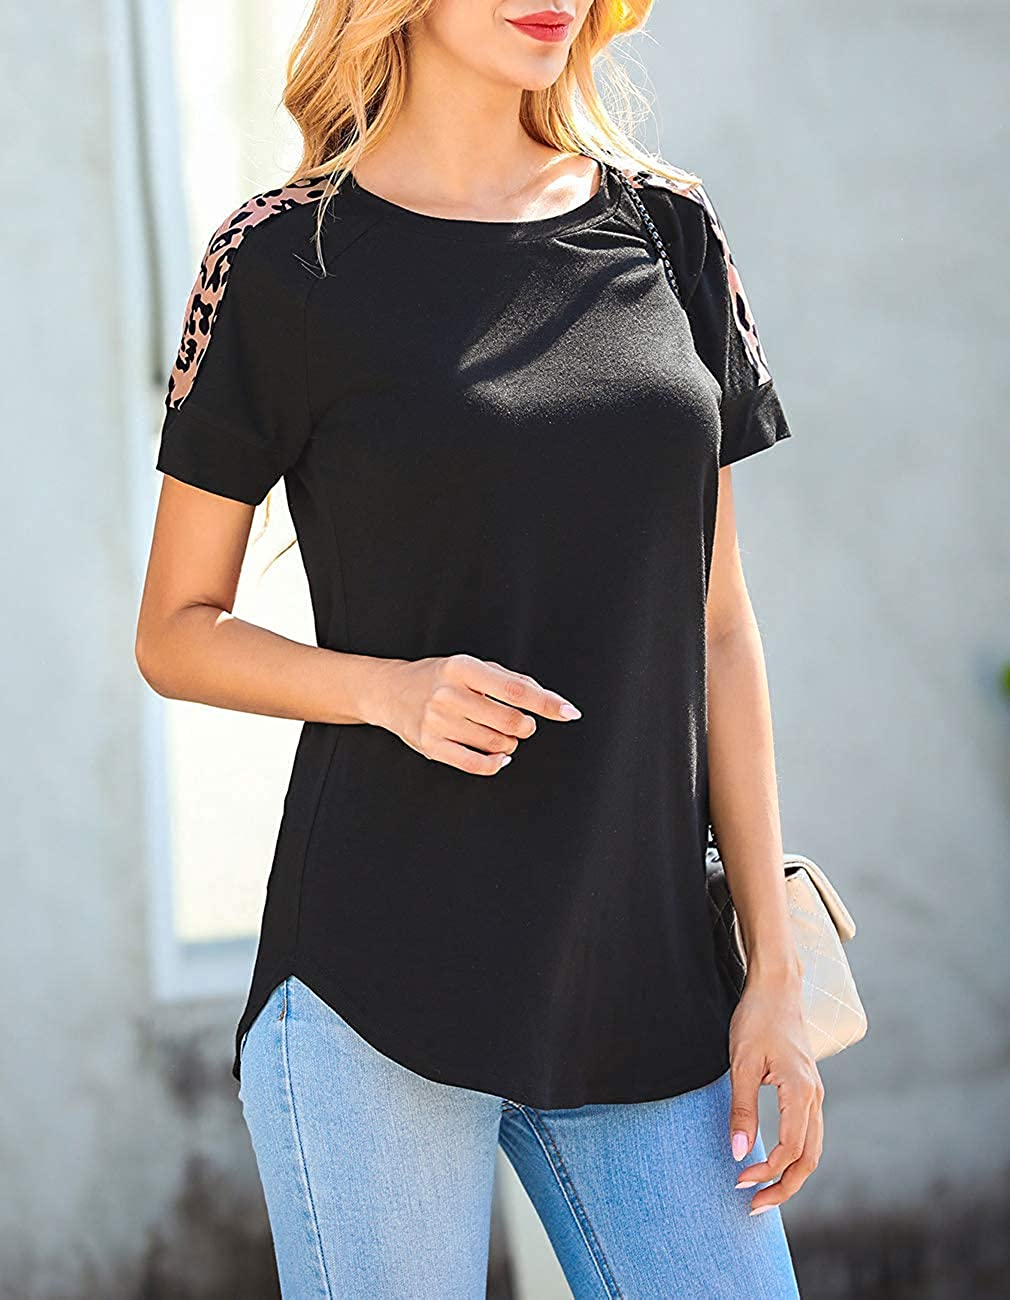 Womens Leopard Print Tops Short Sleeve Cute T Shirts Round Neck Casual Summer Tunic Tee Blouse